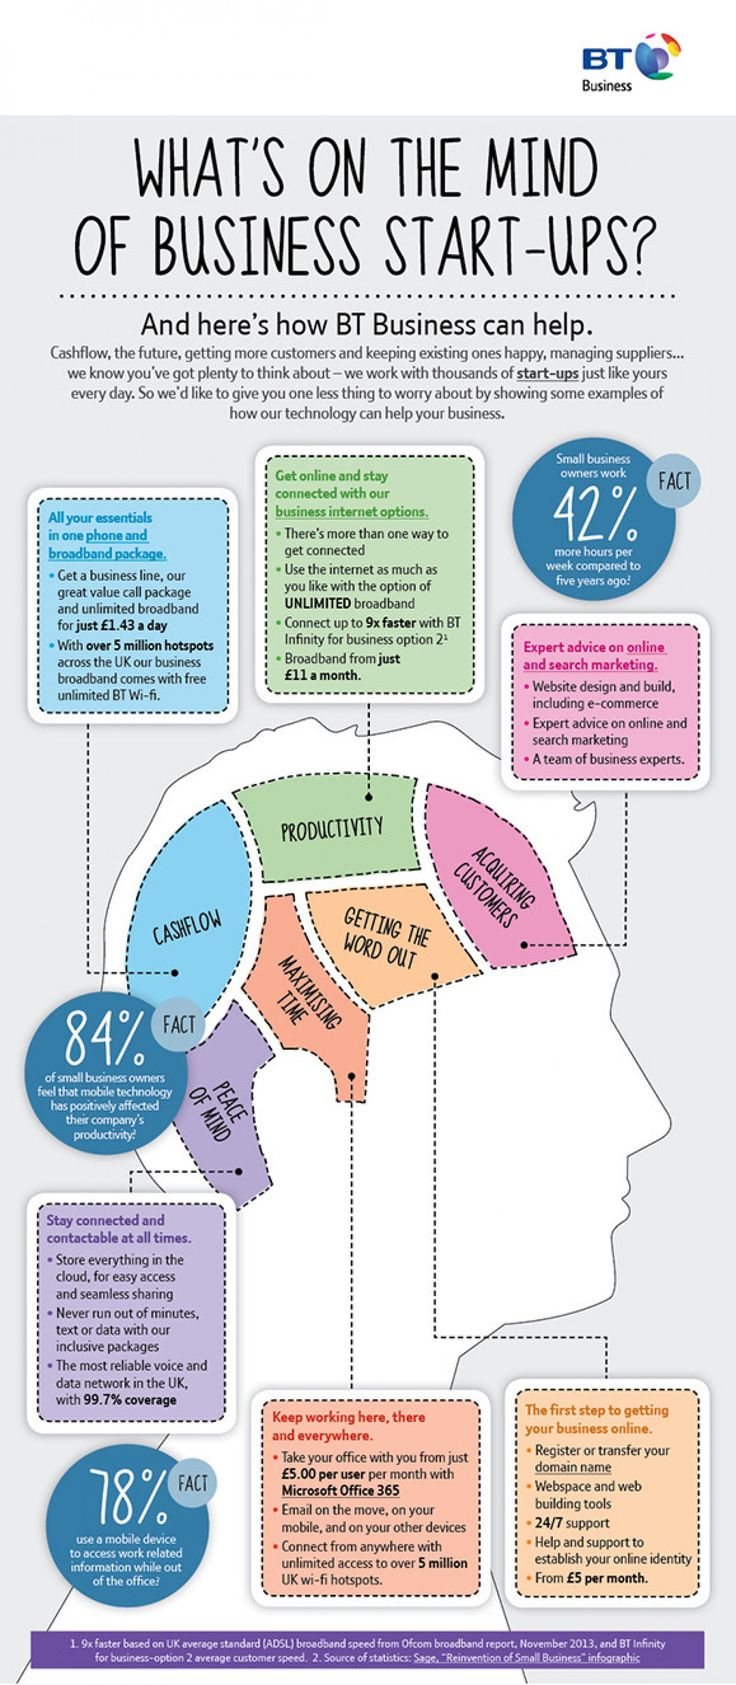 What's On The Mind Of Business Start-Ups? - #infographic